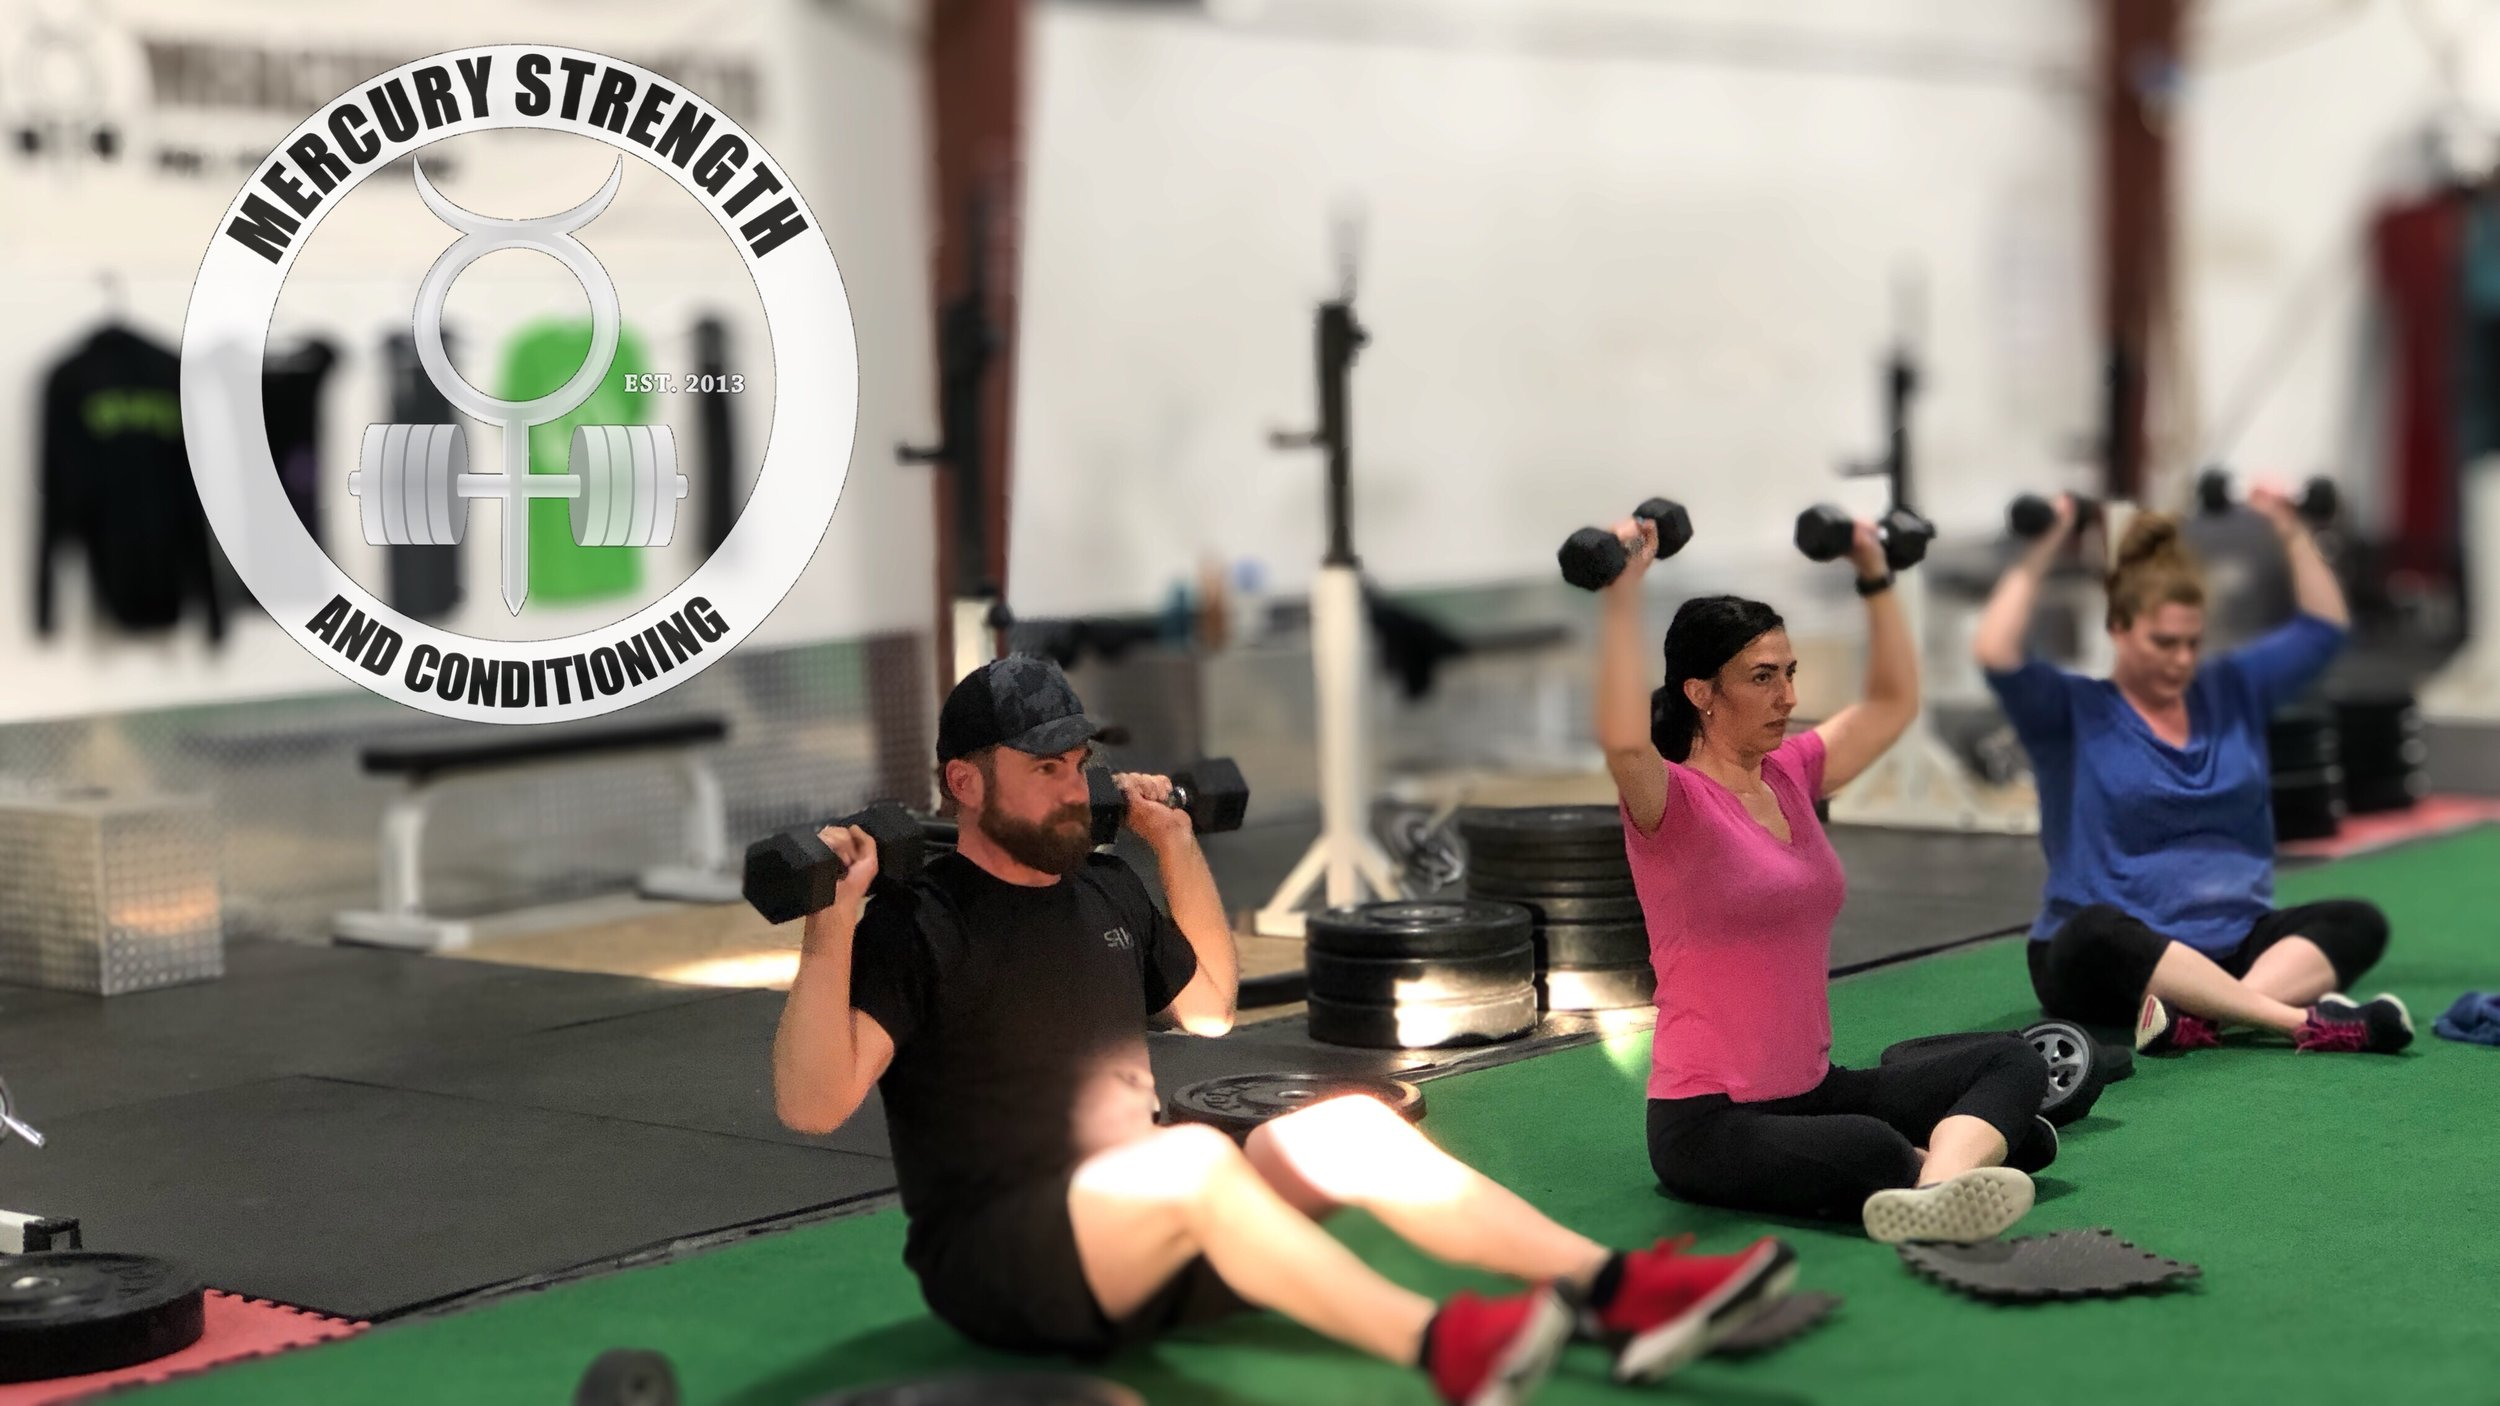 Family and friends train together to build stronger bonds!